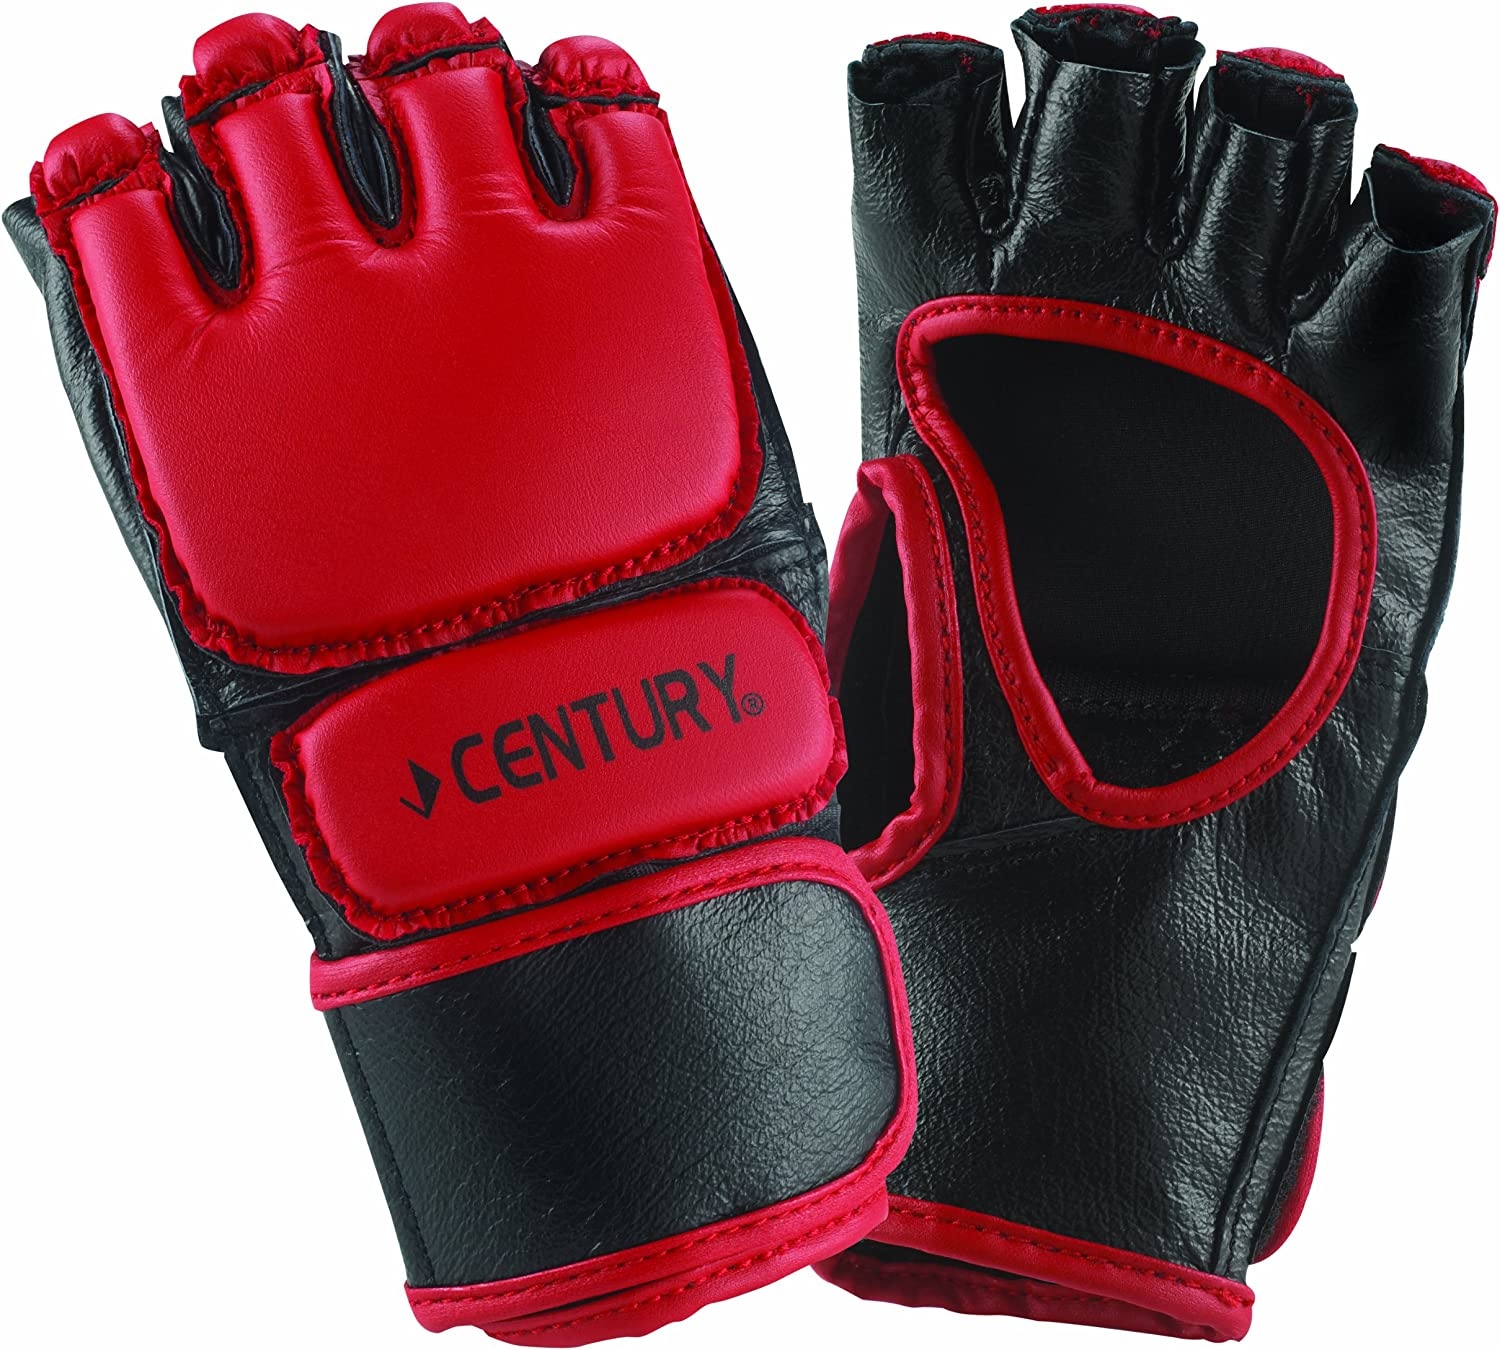 Popular overseas Same day shipping Century Youth Open Palm Gloves